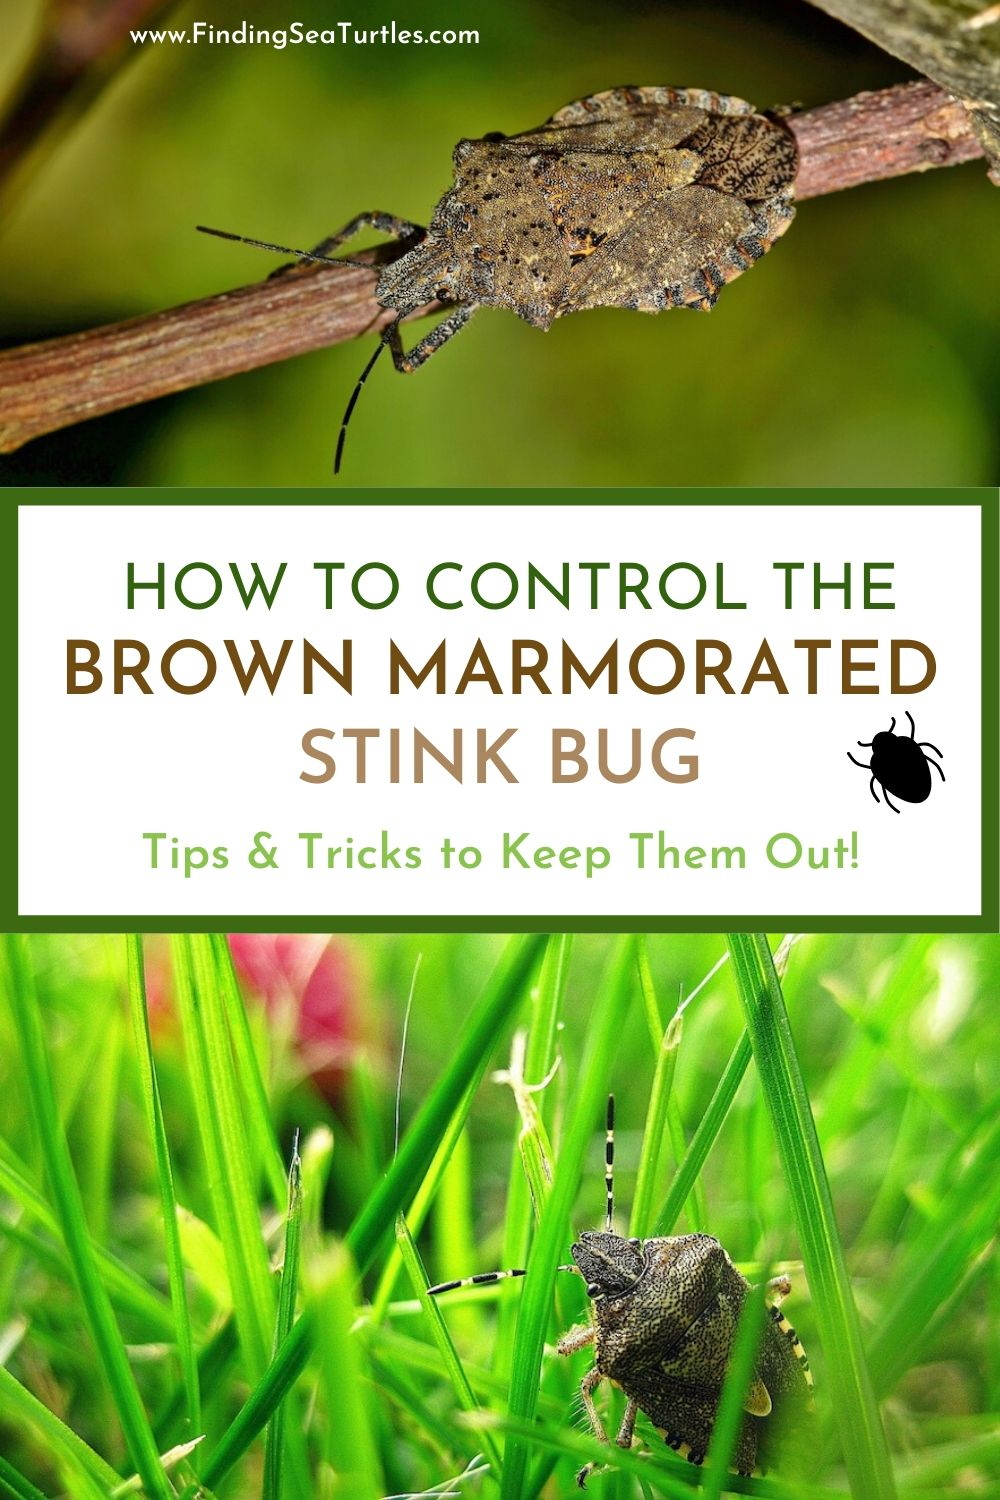 How to Control the Brown Marmorated Stink Bug #Garden #Plants #Gardening #GardenPests #StinkBugs #StoptheBMSB #ControltheStinkBug